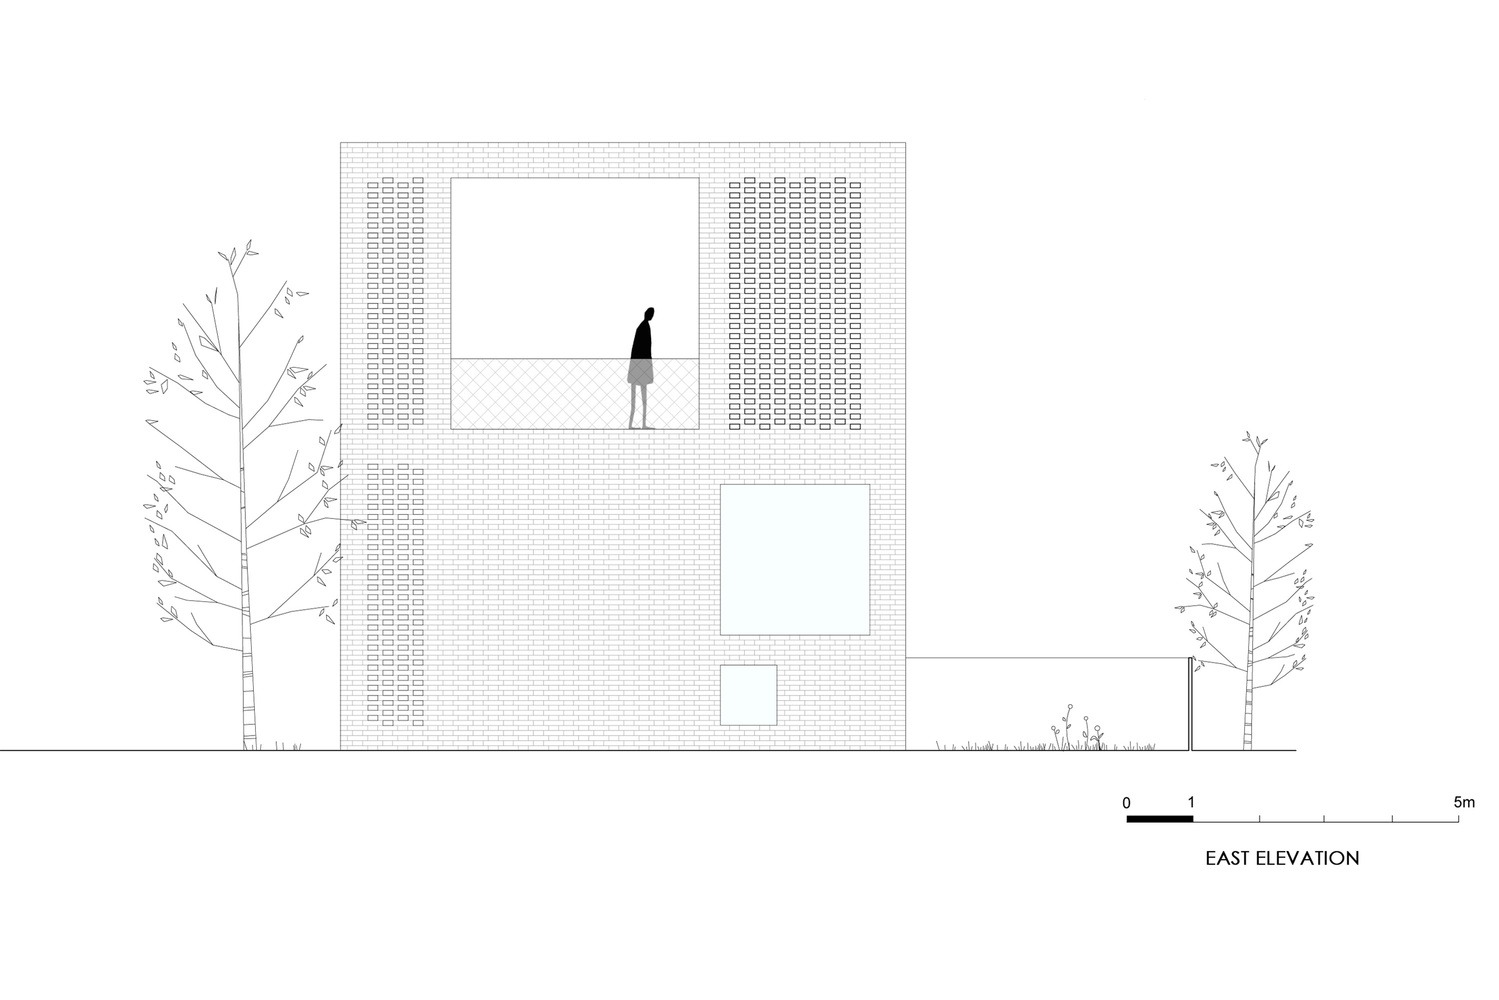 House_for_W_by_MFRMGR_eastfacade.jpg